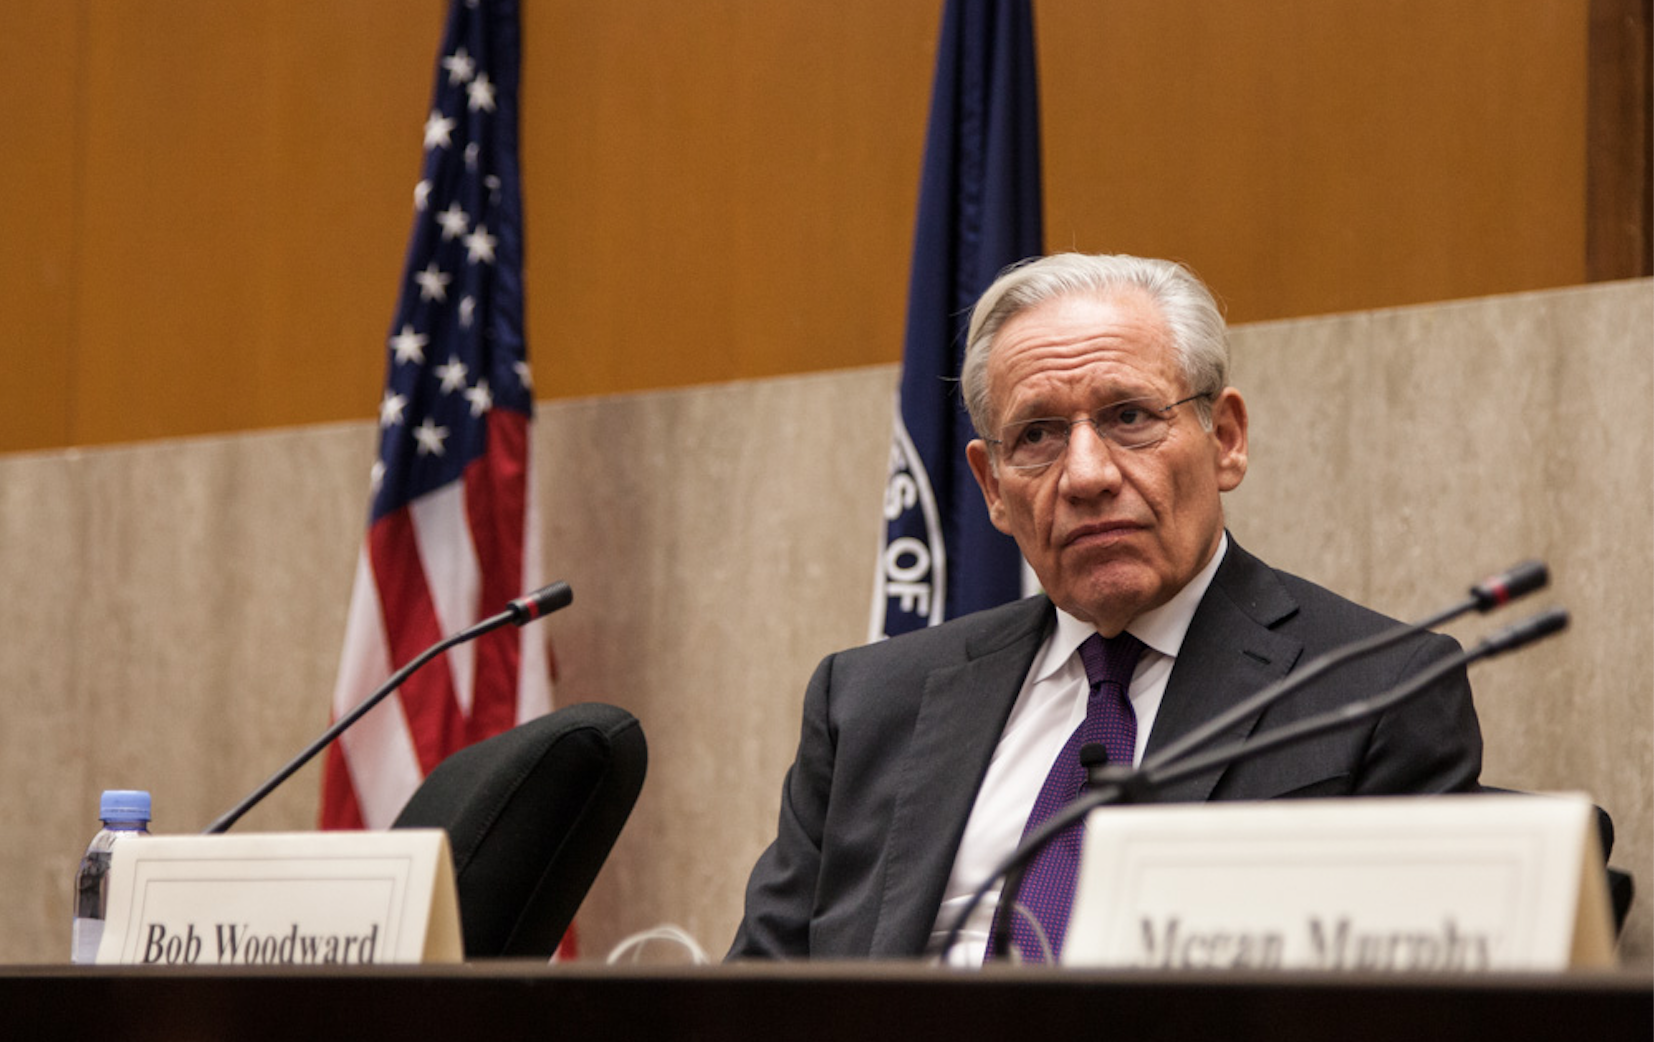 A China Story Bob Woodward Chose Not to Tell | The American Spectator | USA News and PoliticsThe American Spectator | USA News and Politics